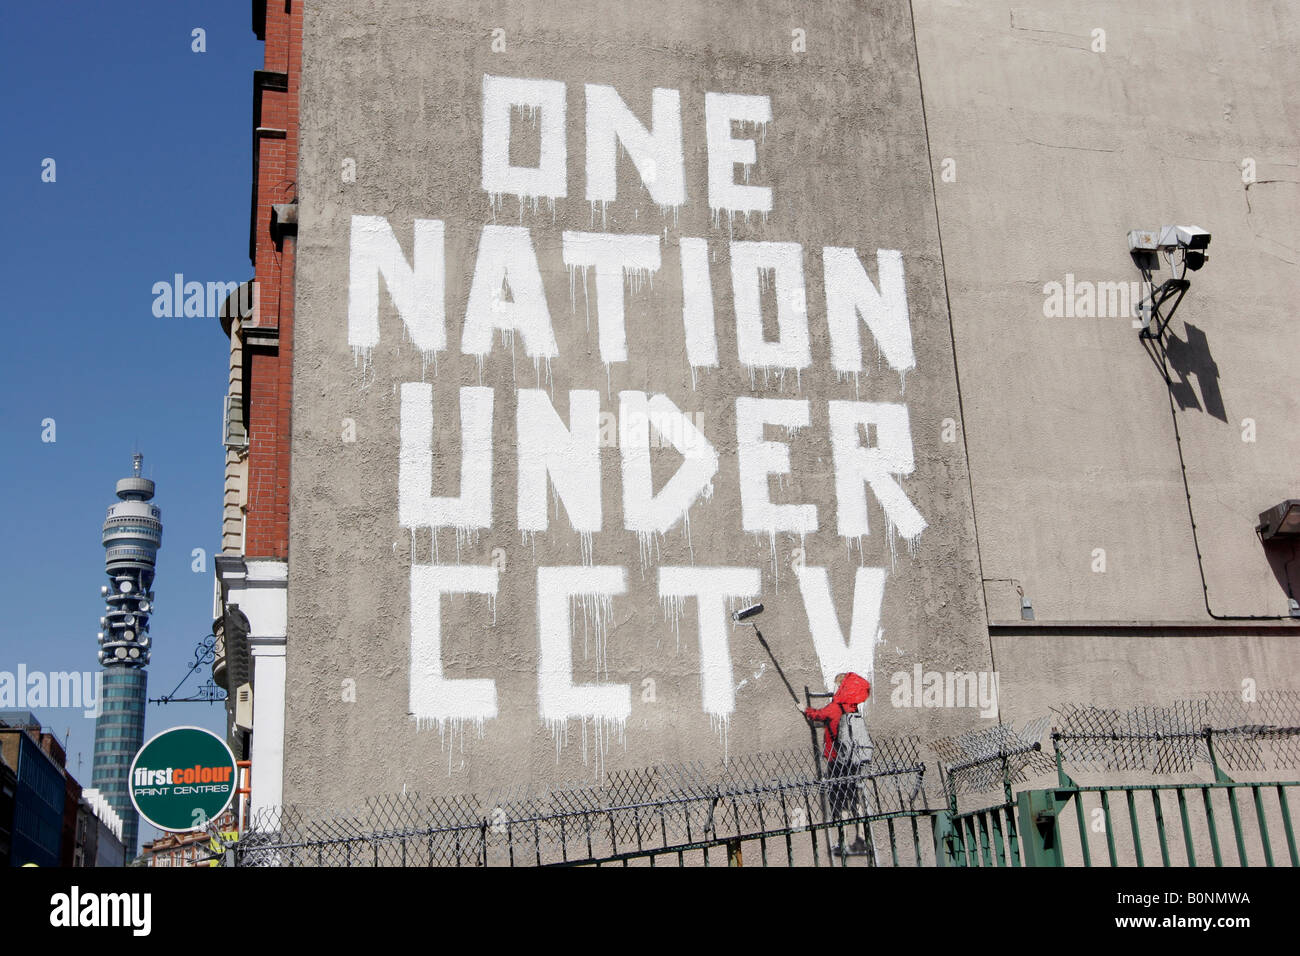 One Nation Under CCTV - Street art by Banksy in London's Newman